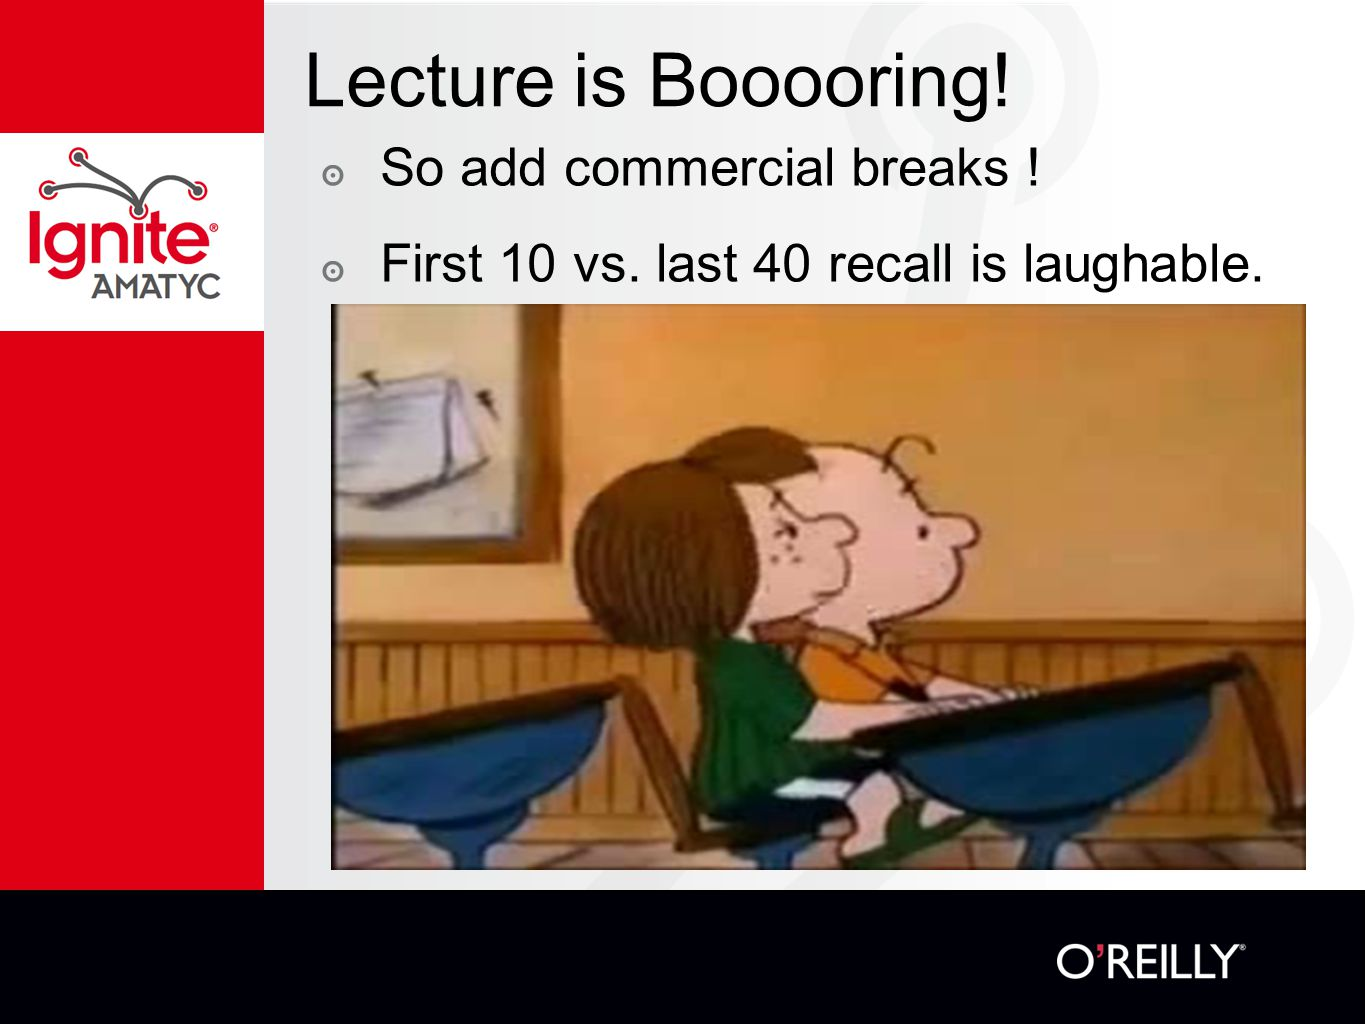 Lecture is Booooring! ๏ So add commercial breaks ! ๏ First 10 vs. last 40 recall is laughable.